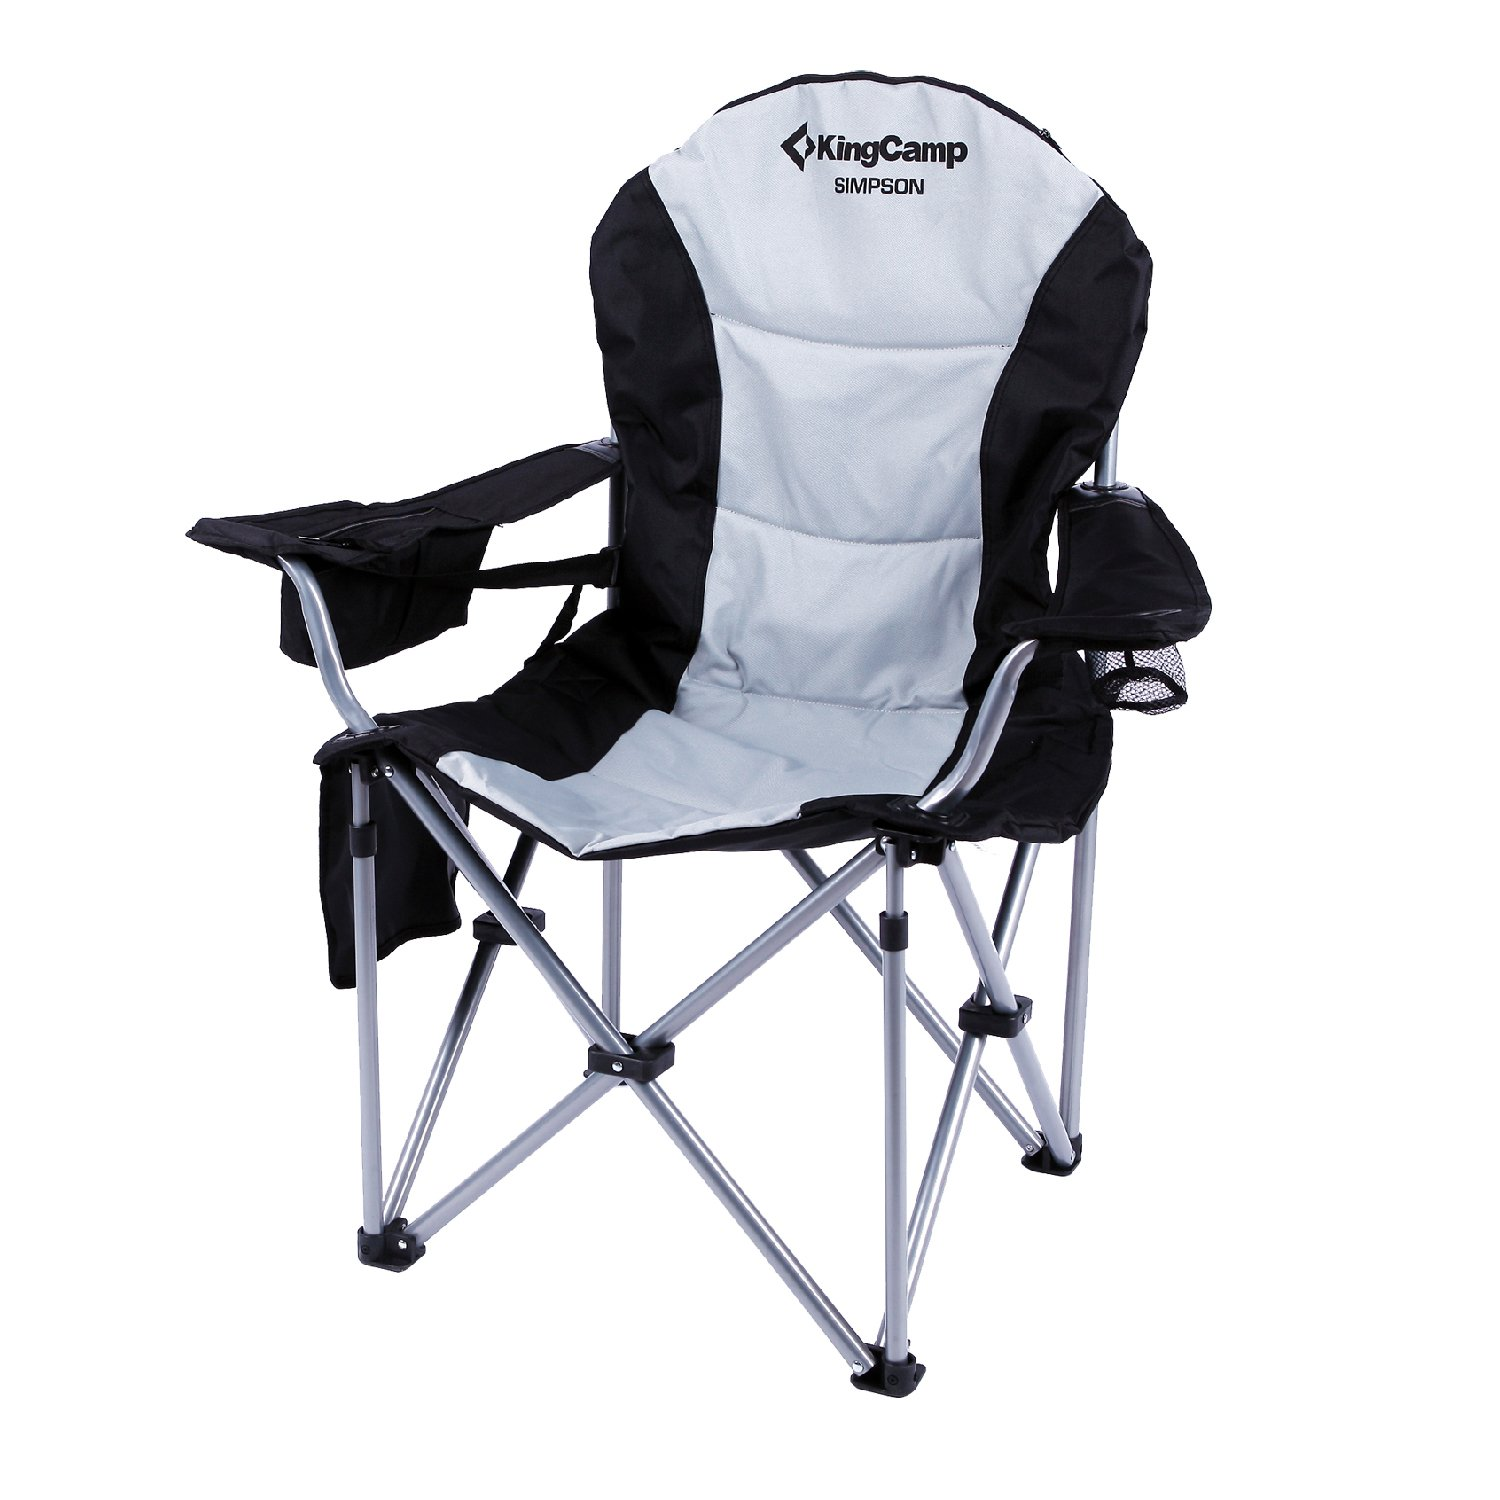 KingCamp Folding Lumbar Back Support Chair